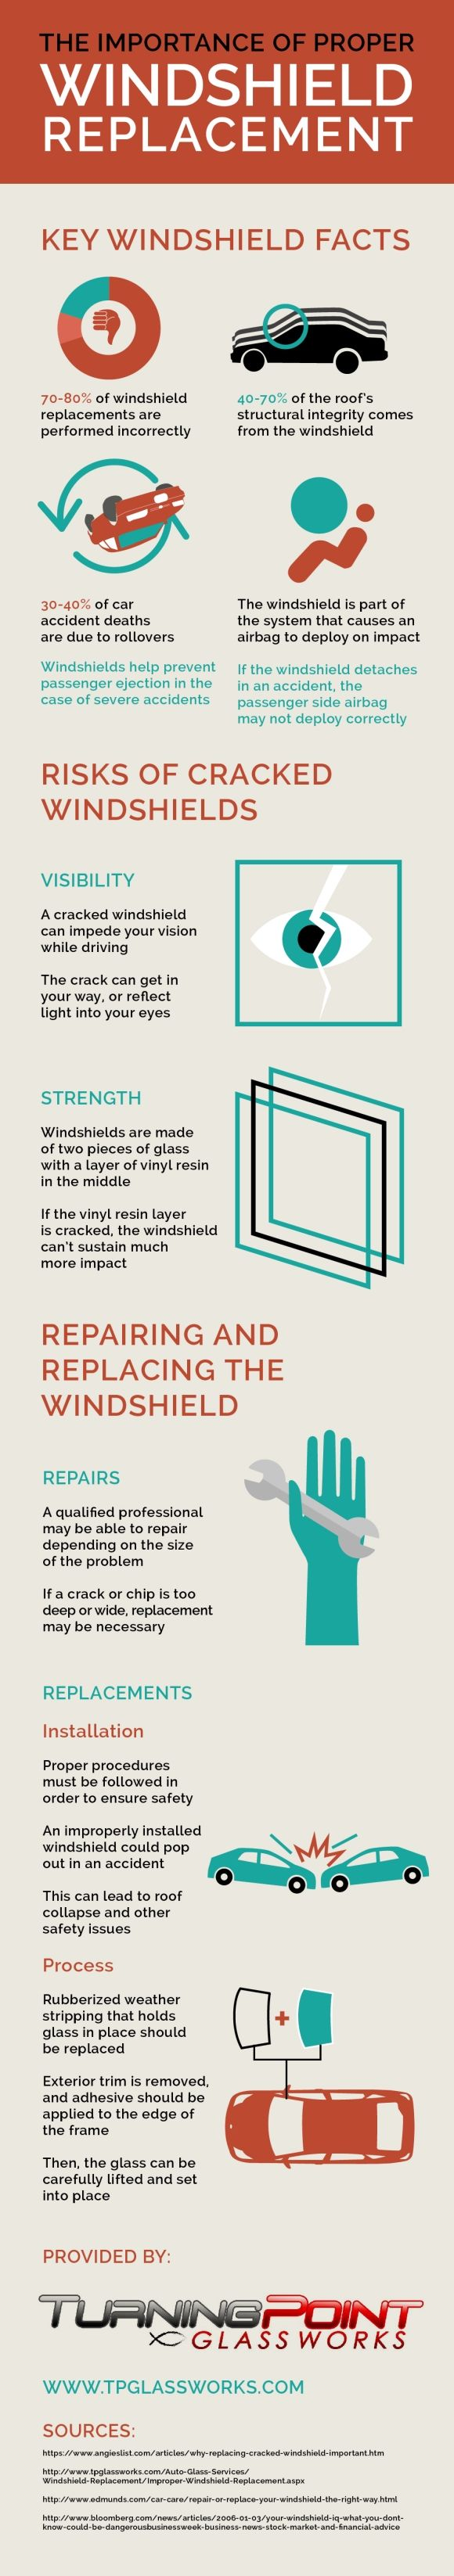 Did you know that a large majority of windshields are placed improperly? Check out this infographic to find out why proper windshield replacement is so important. #infographic #datavisualization #windshield #repair